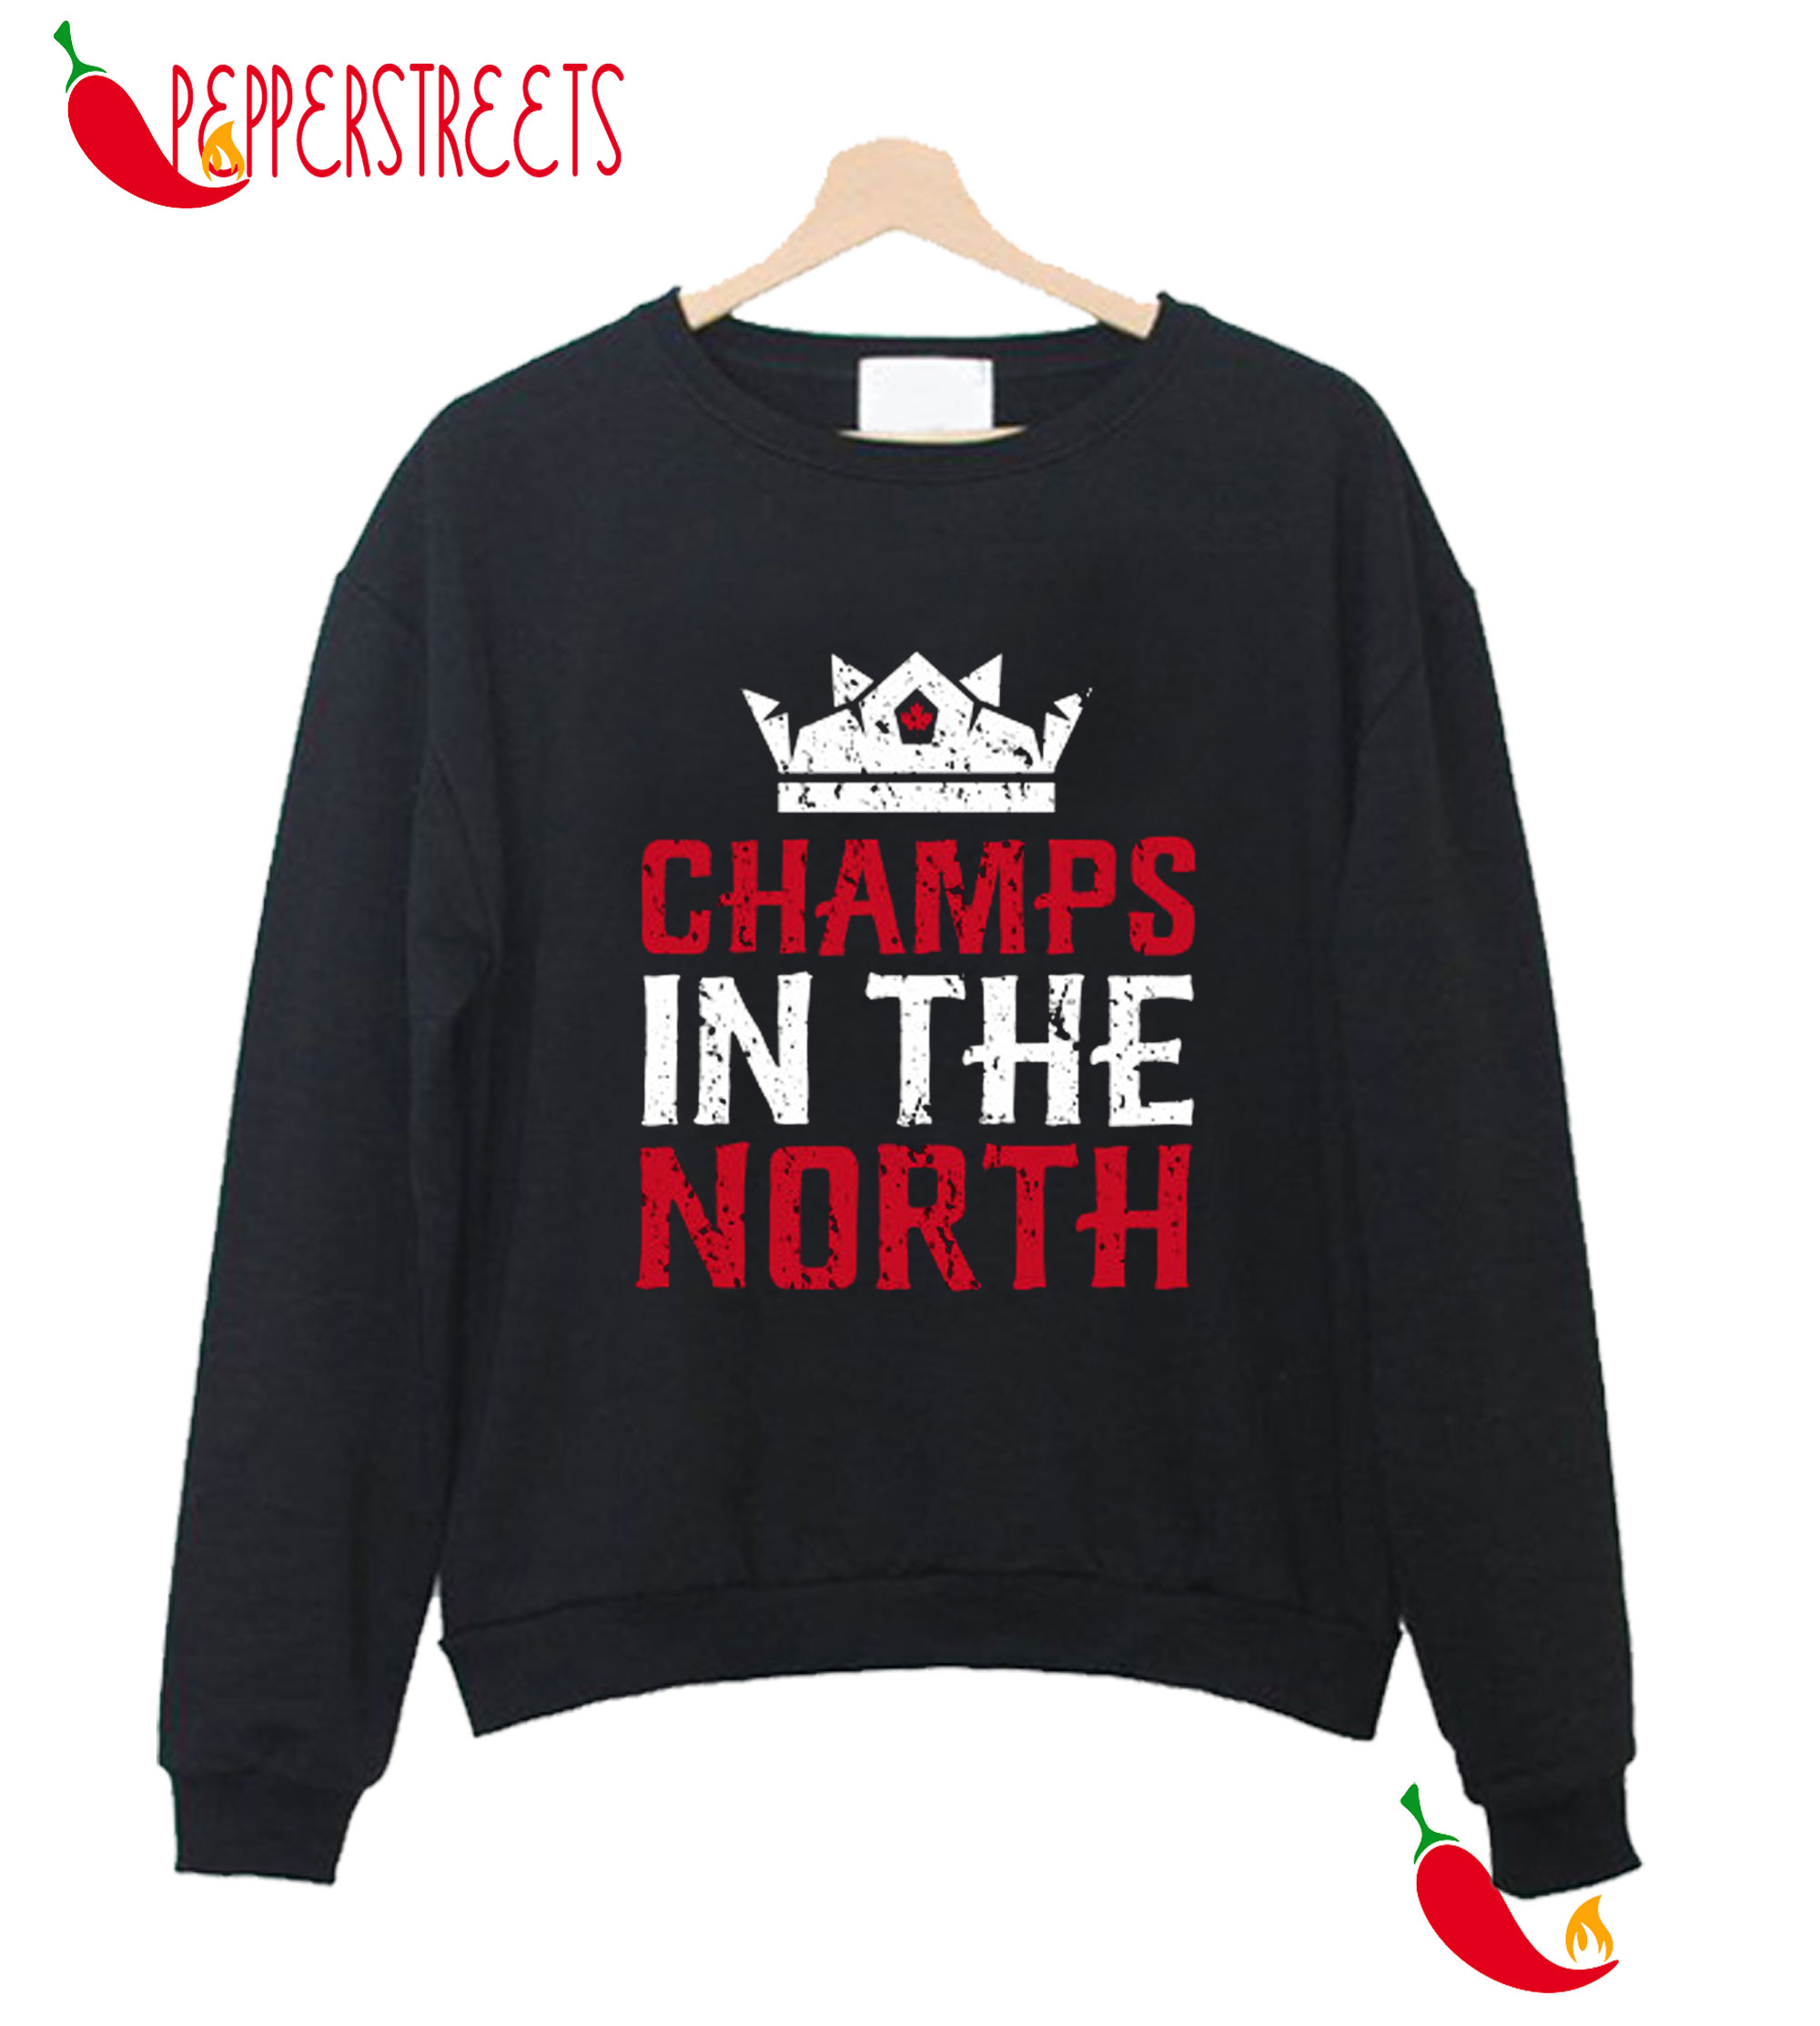 Champs In The North Sweatshirt